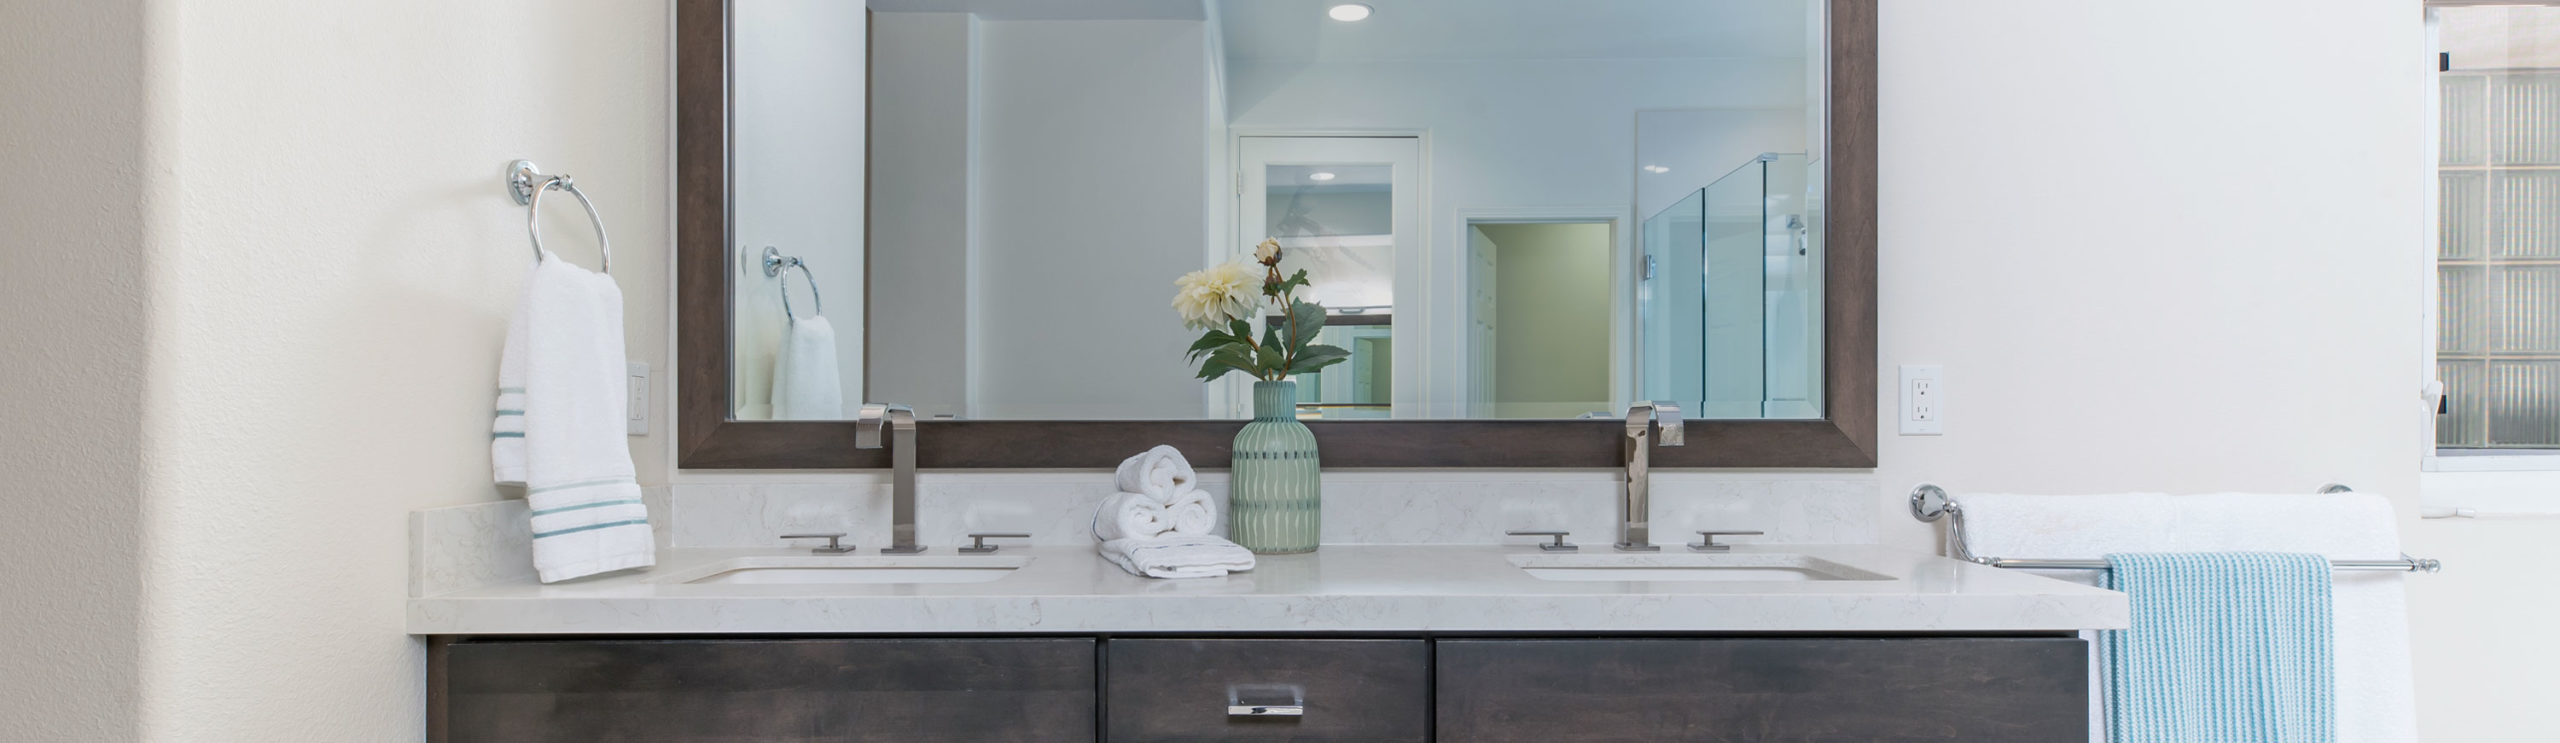 Bathroom Remodeling Huntington Beach, Orange County, CA